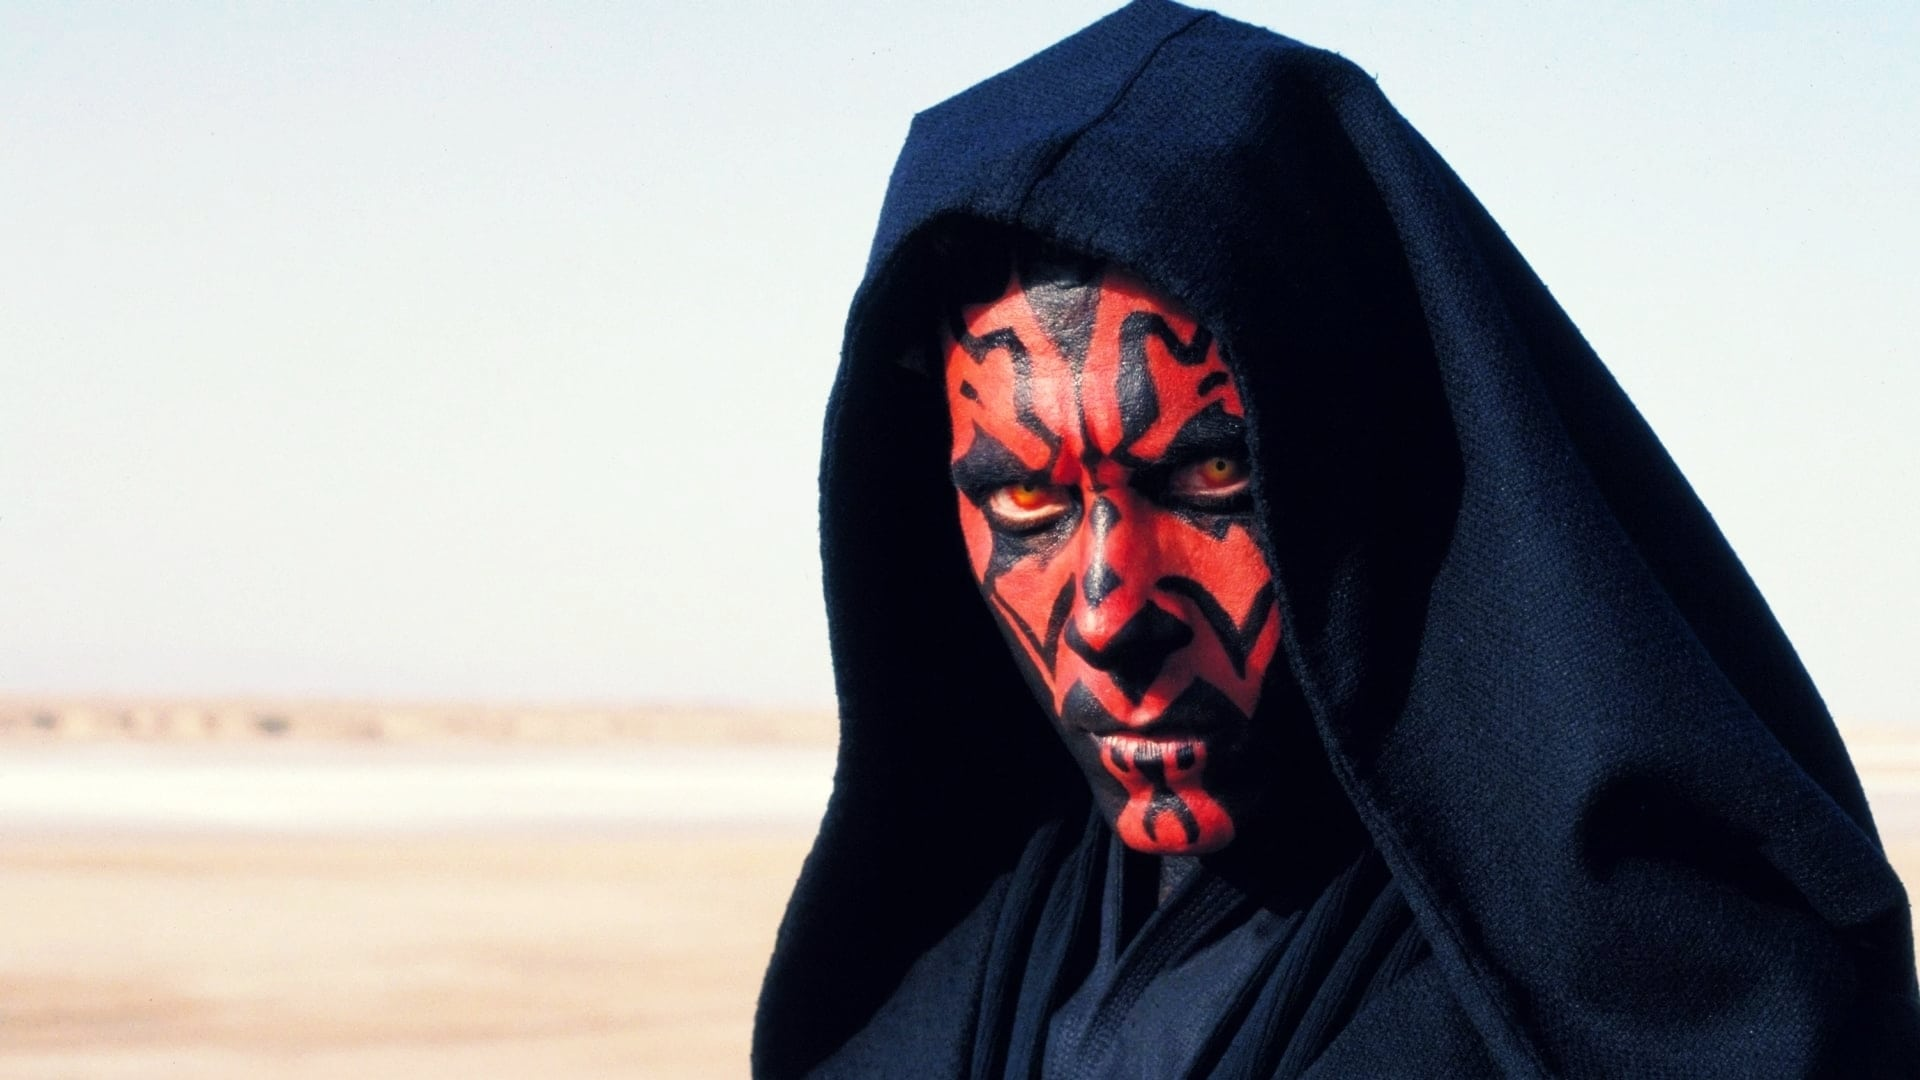 Darth Maul in Star Wars: Episode 1 - The Phantom Menace